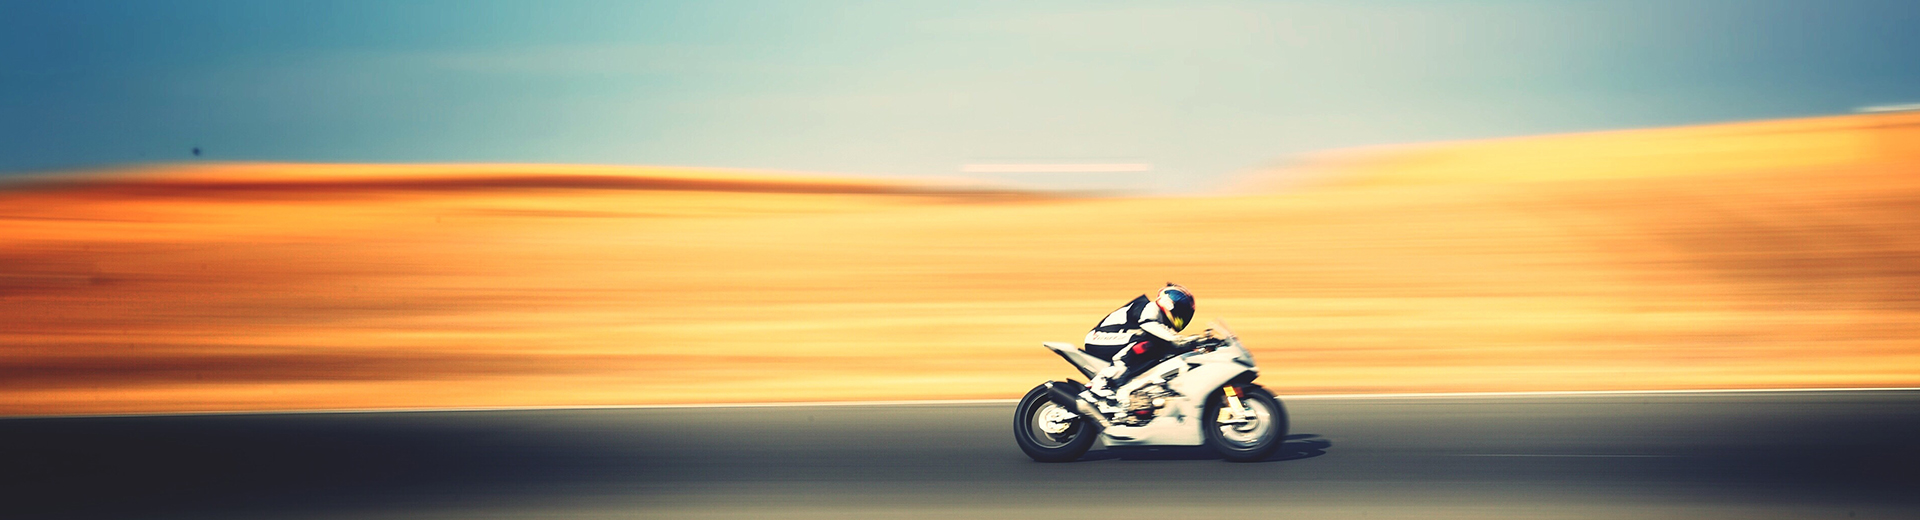 Panning tips for action shots - Canon Europe